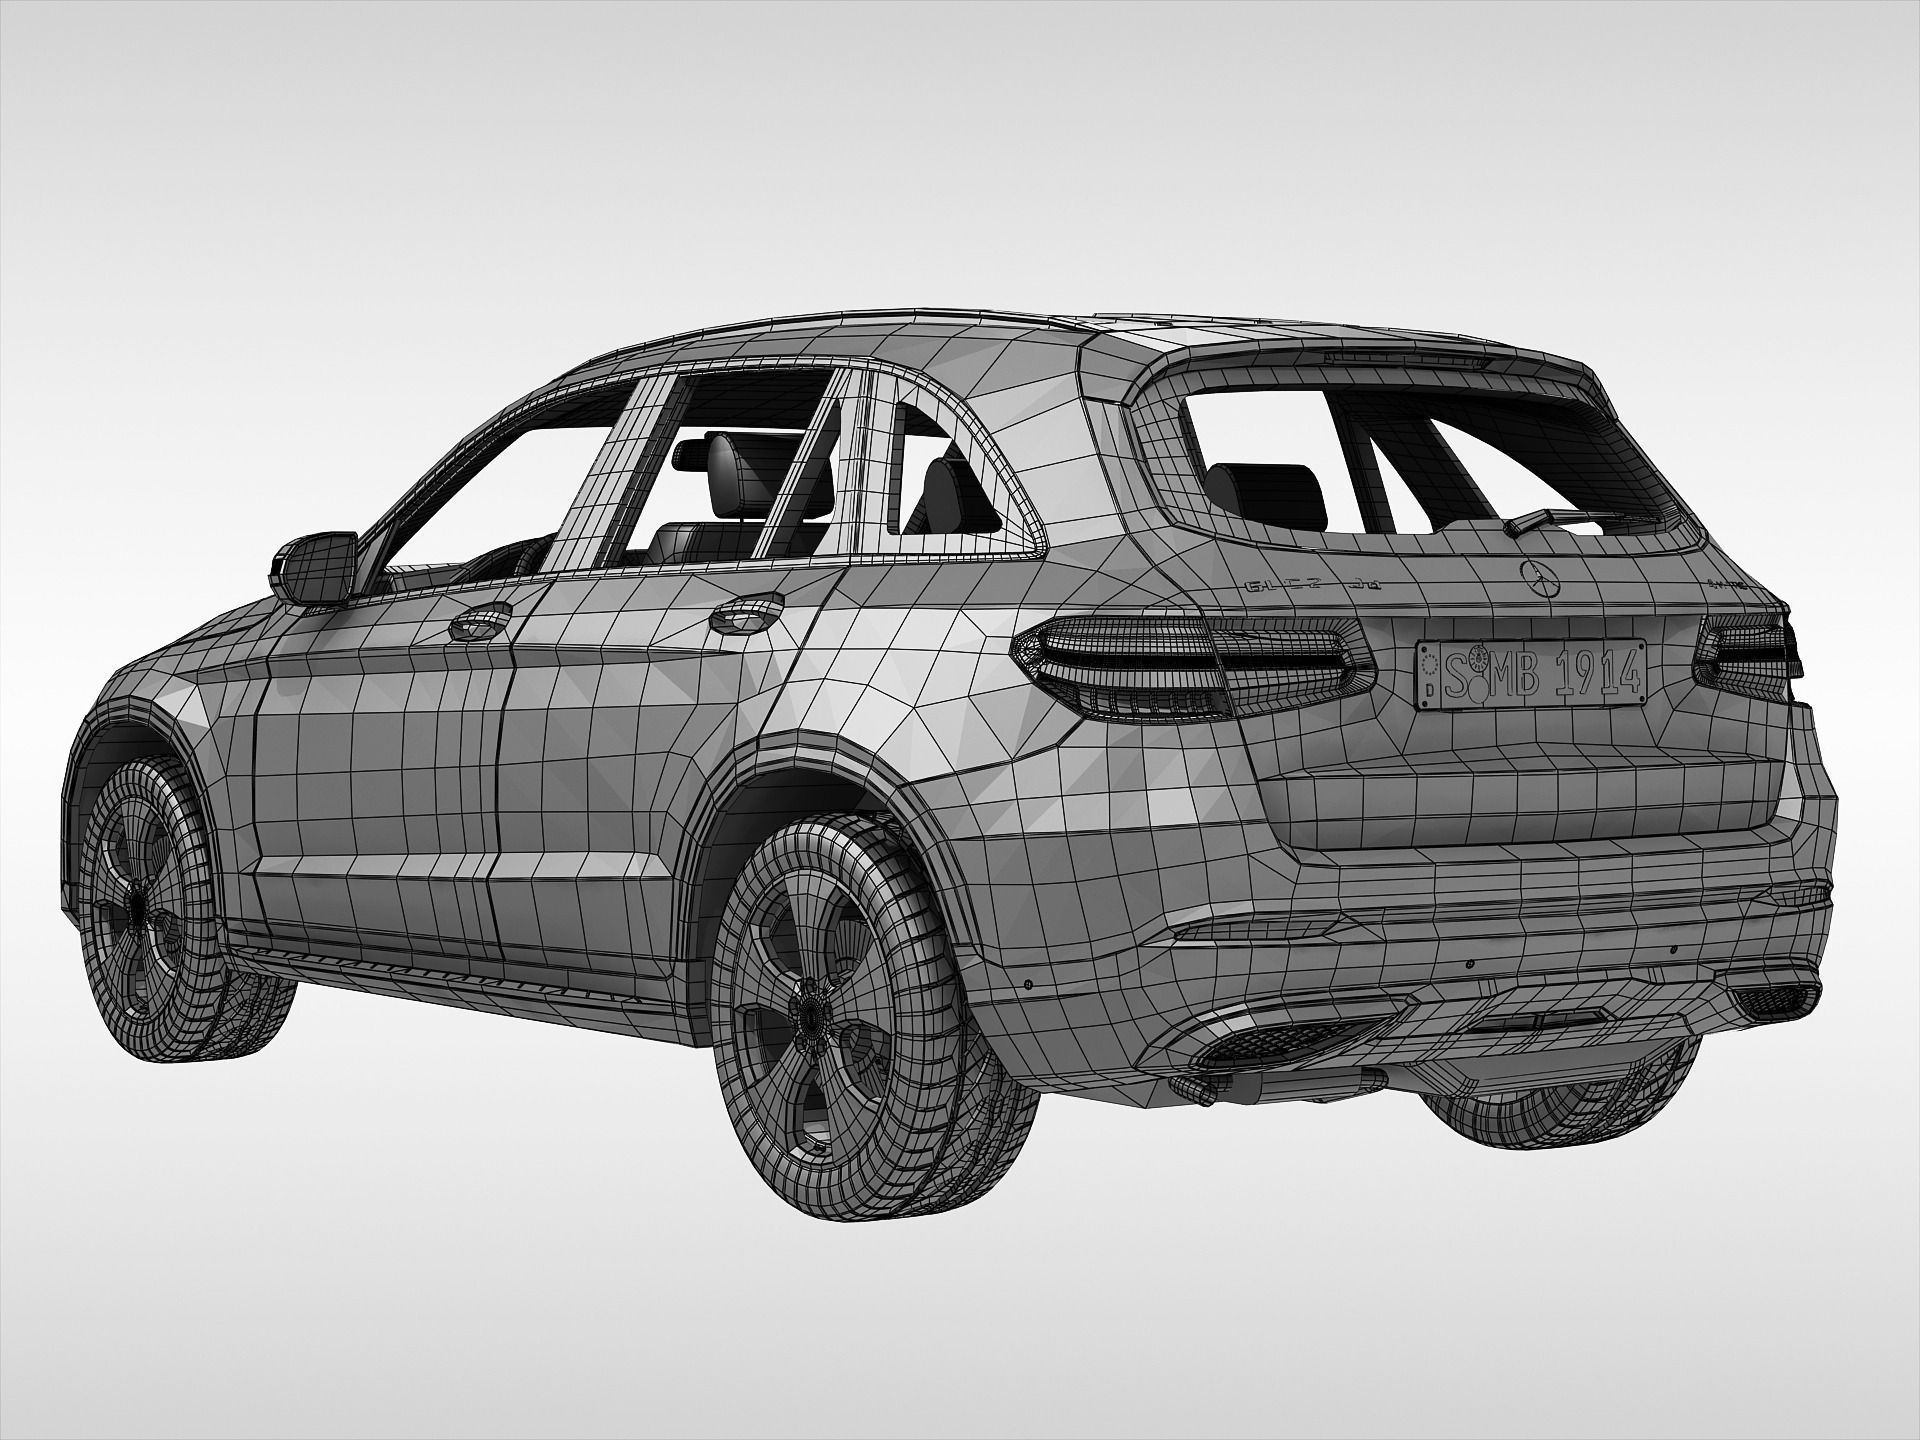 Mercedes benz glc class 2016 3d model max obj 3ds fbx 11